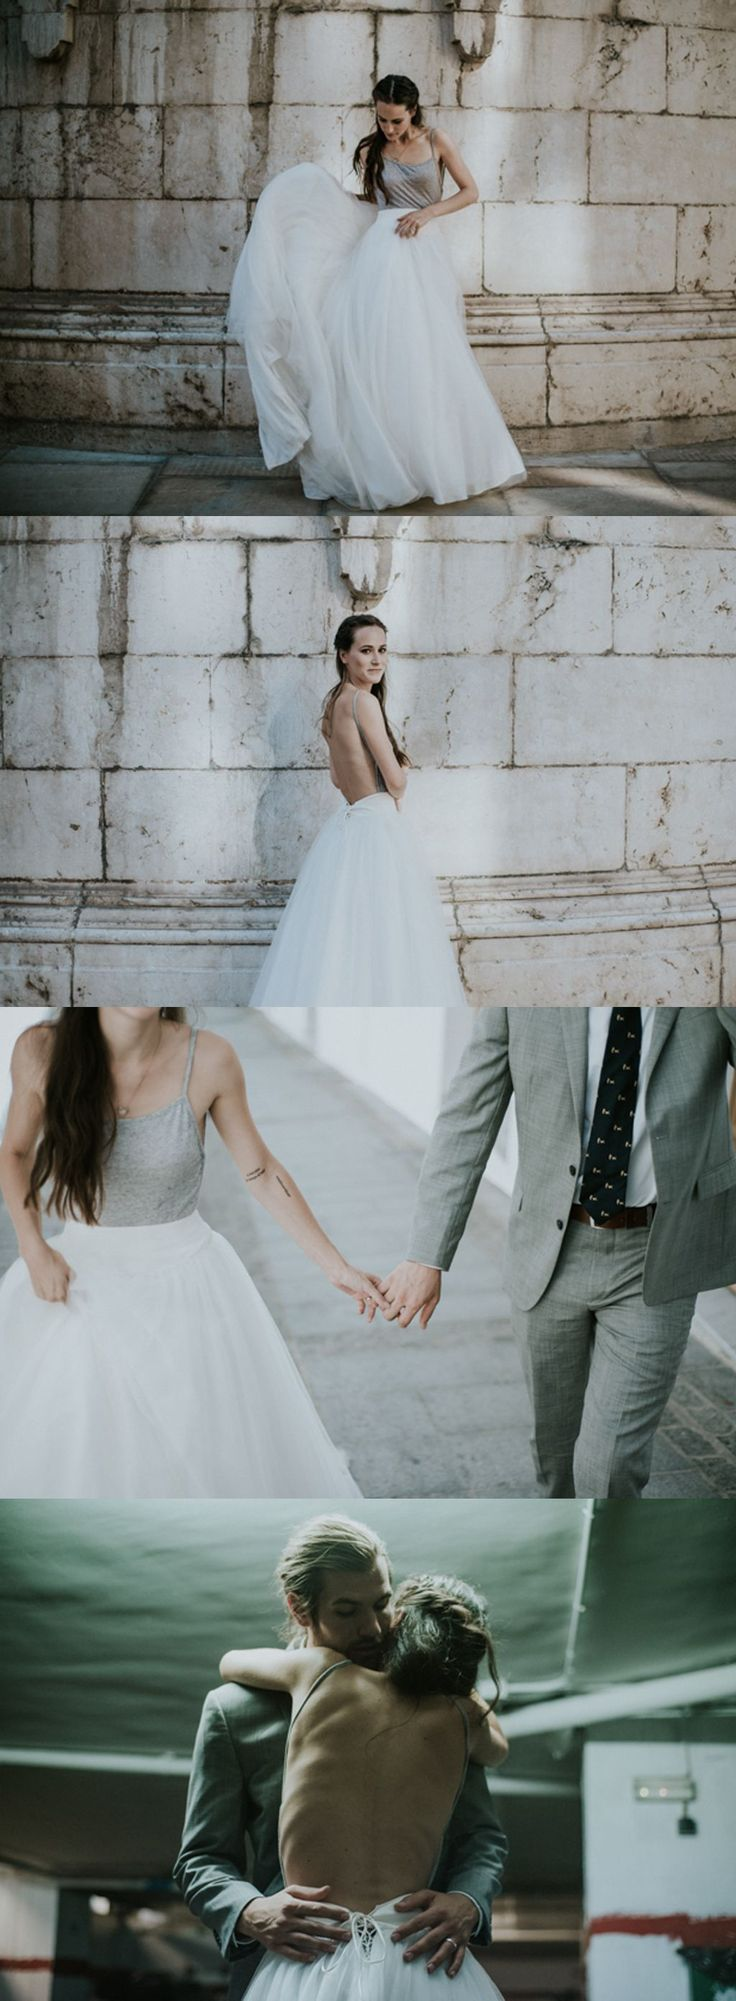 39 best Wedding dress images on Pinterest | Homecoming dresses ...